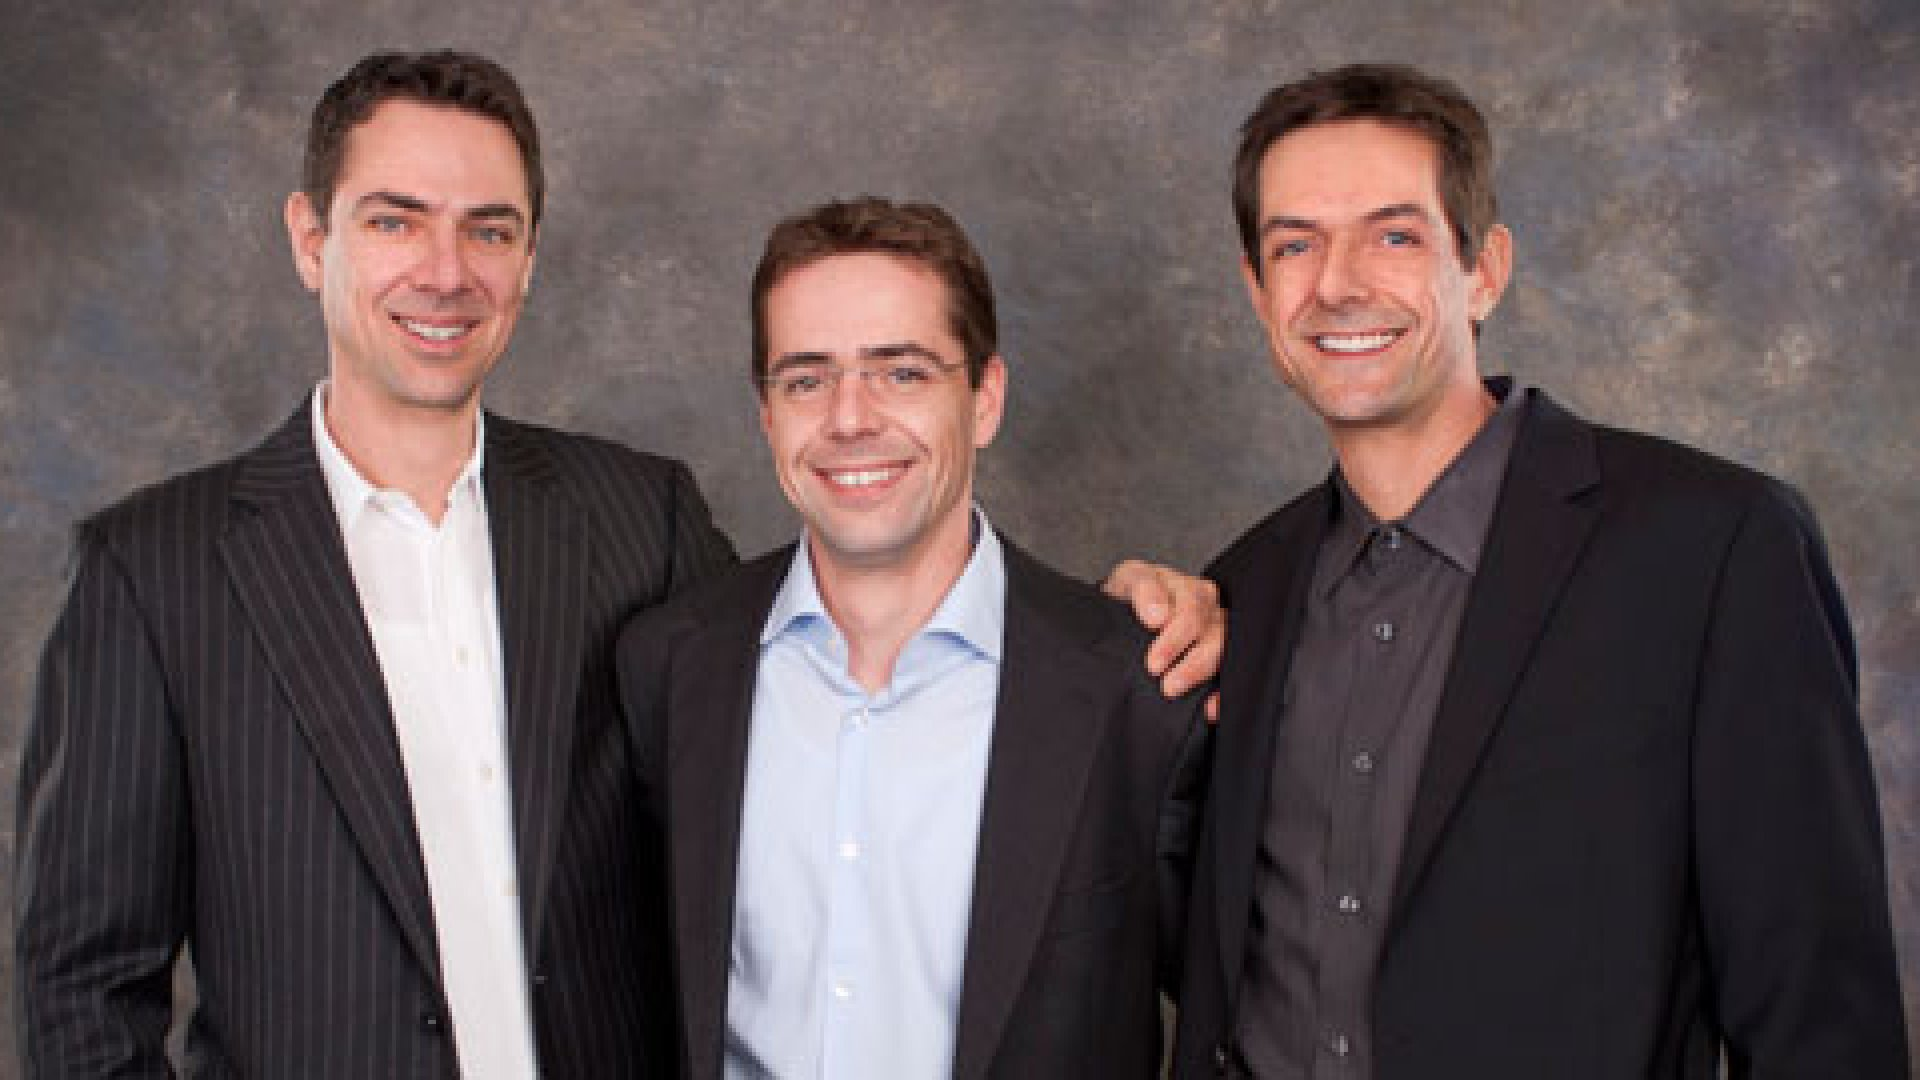 KG Technologies is run by the third generation of Gruners. From left to right, Wolfgang, Philipp, and Thomas Gruner.